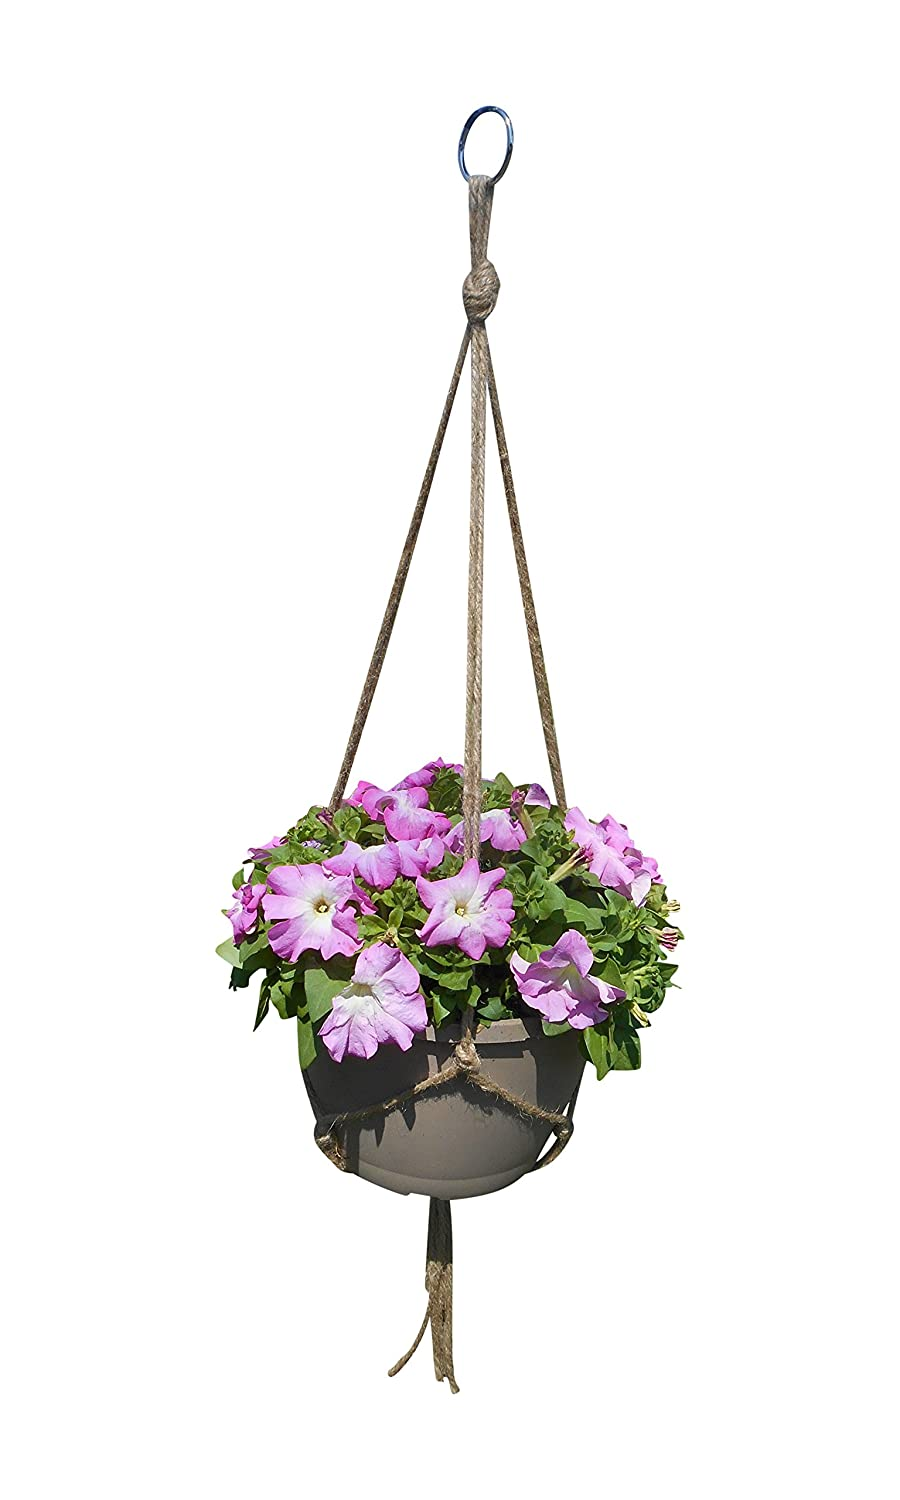 Plant Hanger 3 Leg 42 Inch Natural Jute Extra Strength Indoor Outdoor Plants Hanging Baskets Manufactured By Crows Nest Macrame 3L-42 six crows